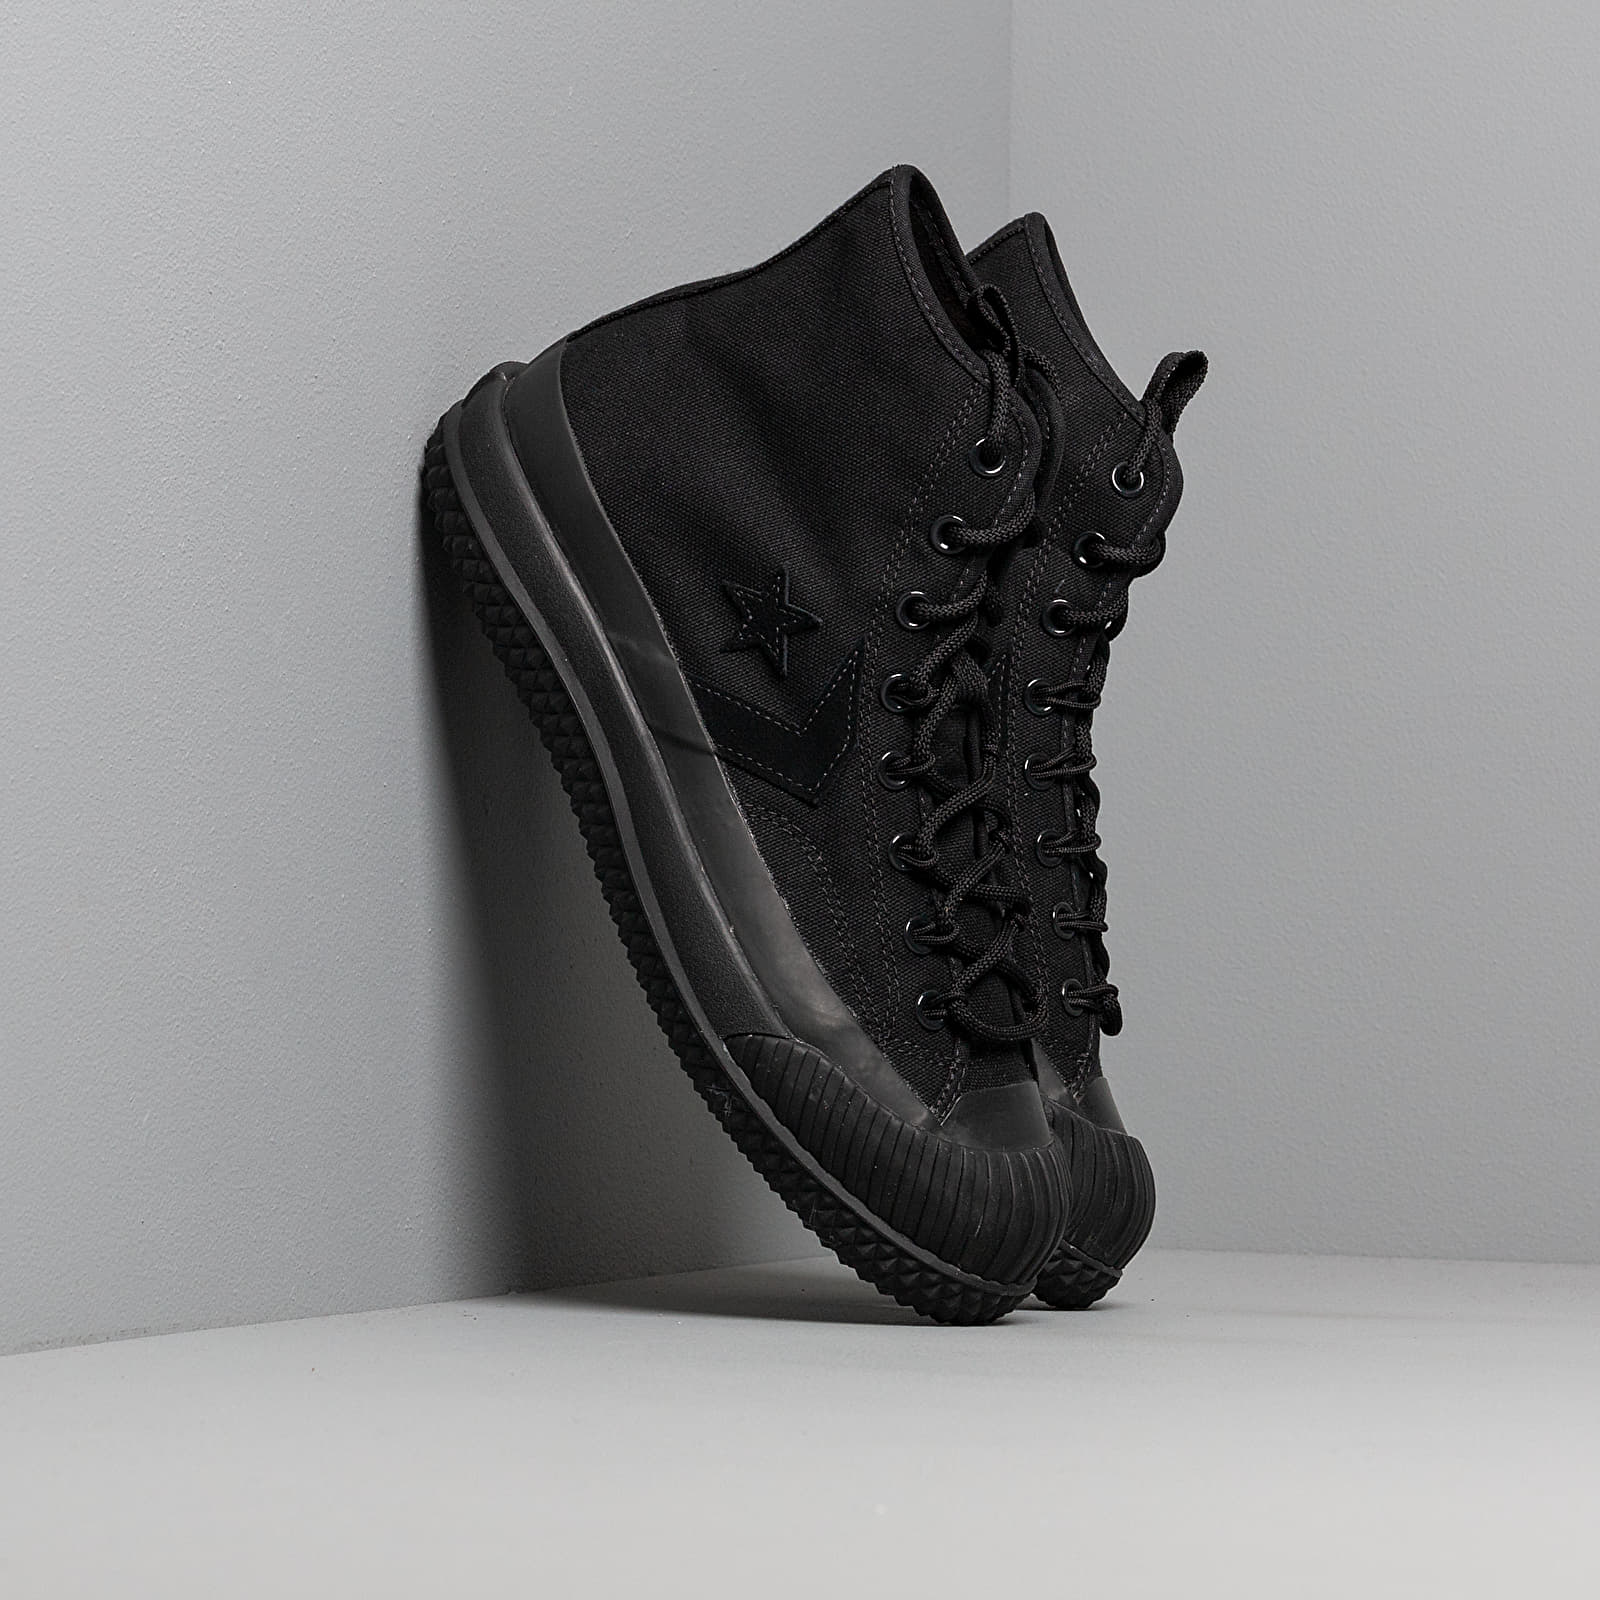 Muške tenisice Converse Bosey Mc Water Repellent Boot Black/ Black/ Black